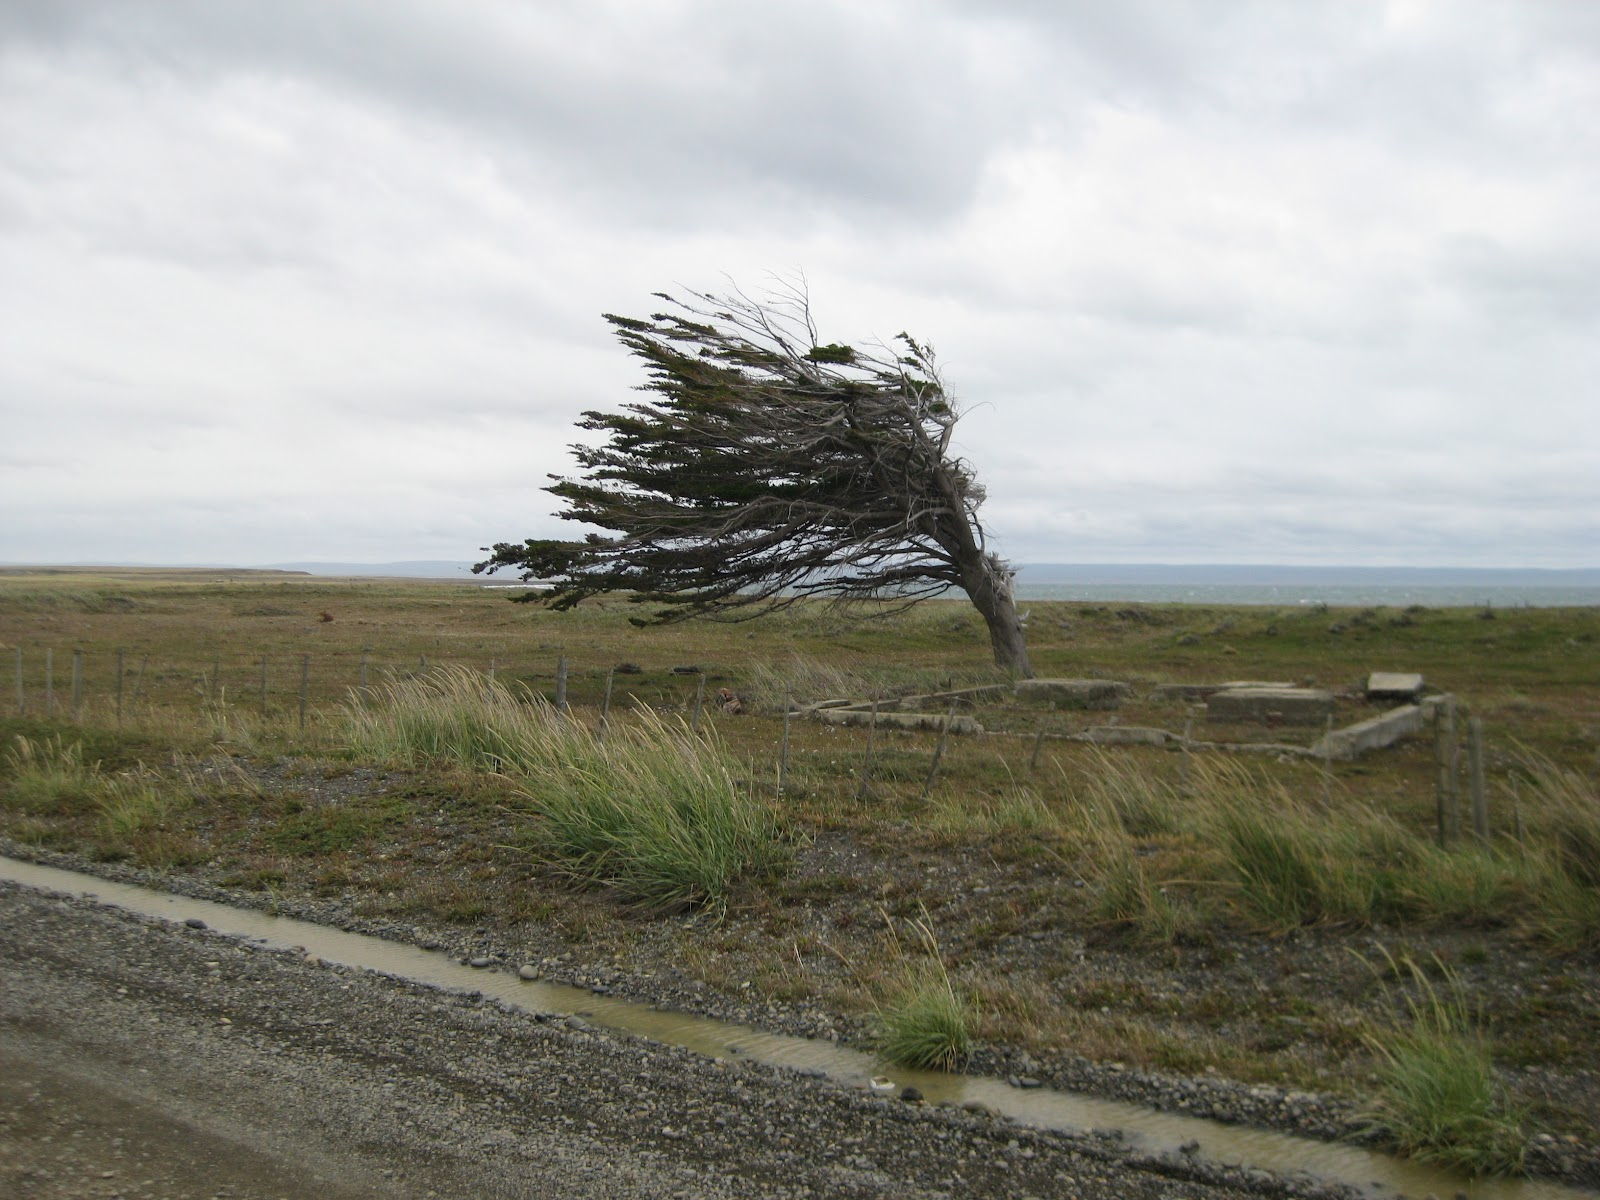 Yes, it is windy. Very, very few trees in northern Tierra del Fuego